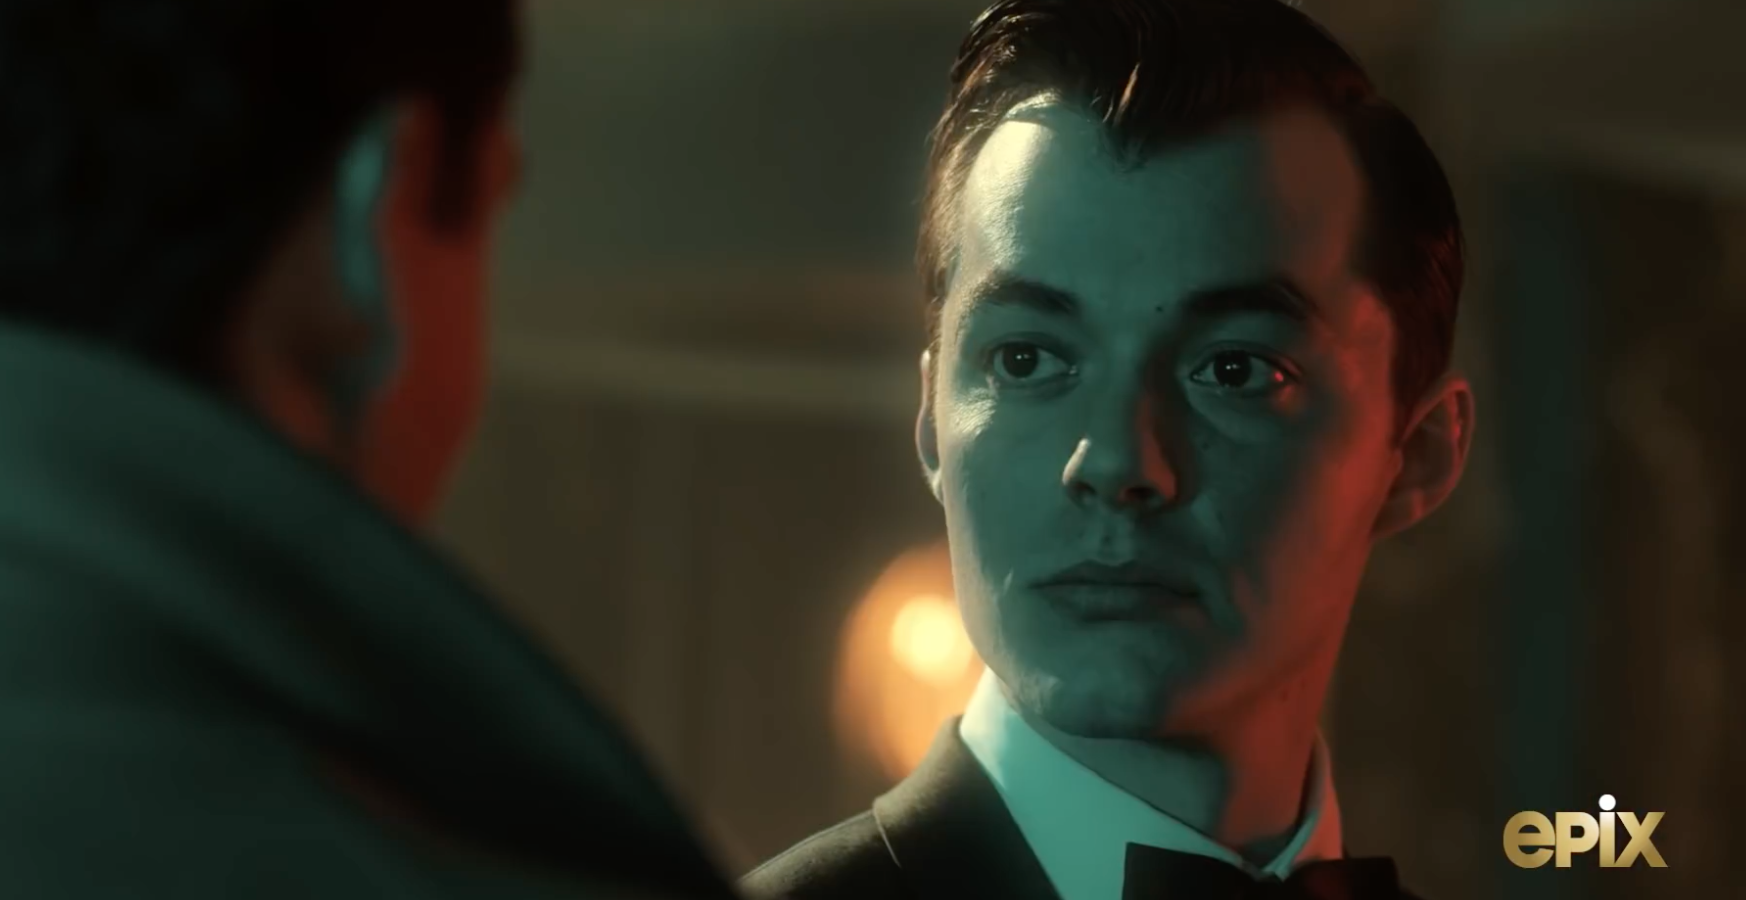 In The Latest Pennyworth Teaser, Future Butler Alfred Meets Future Dead Guy Thomas Wayne